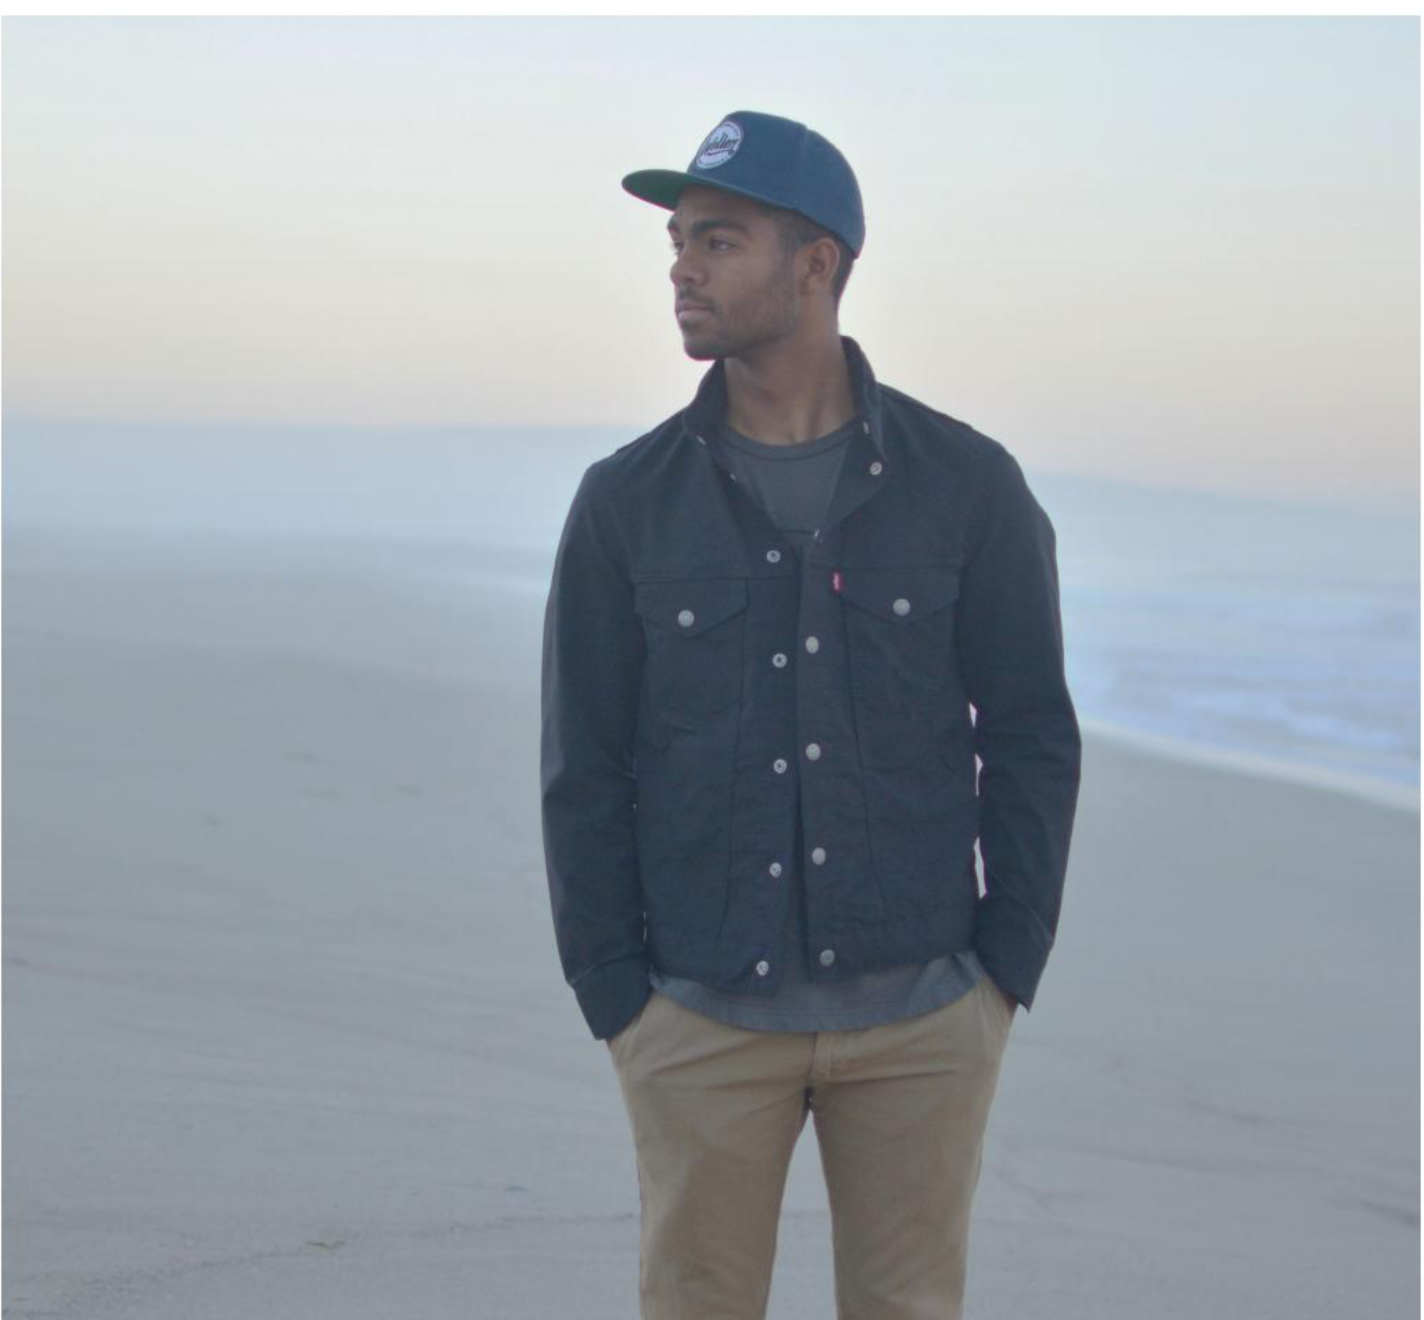 Hunter Jones moments before sunrise at Dockweiler State Beach during a photo shoot for Warrior Life magazine in 2016. Jones was a contestant on ABC's